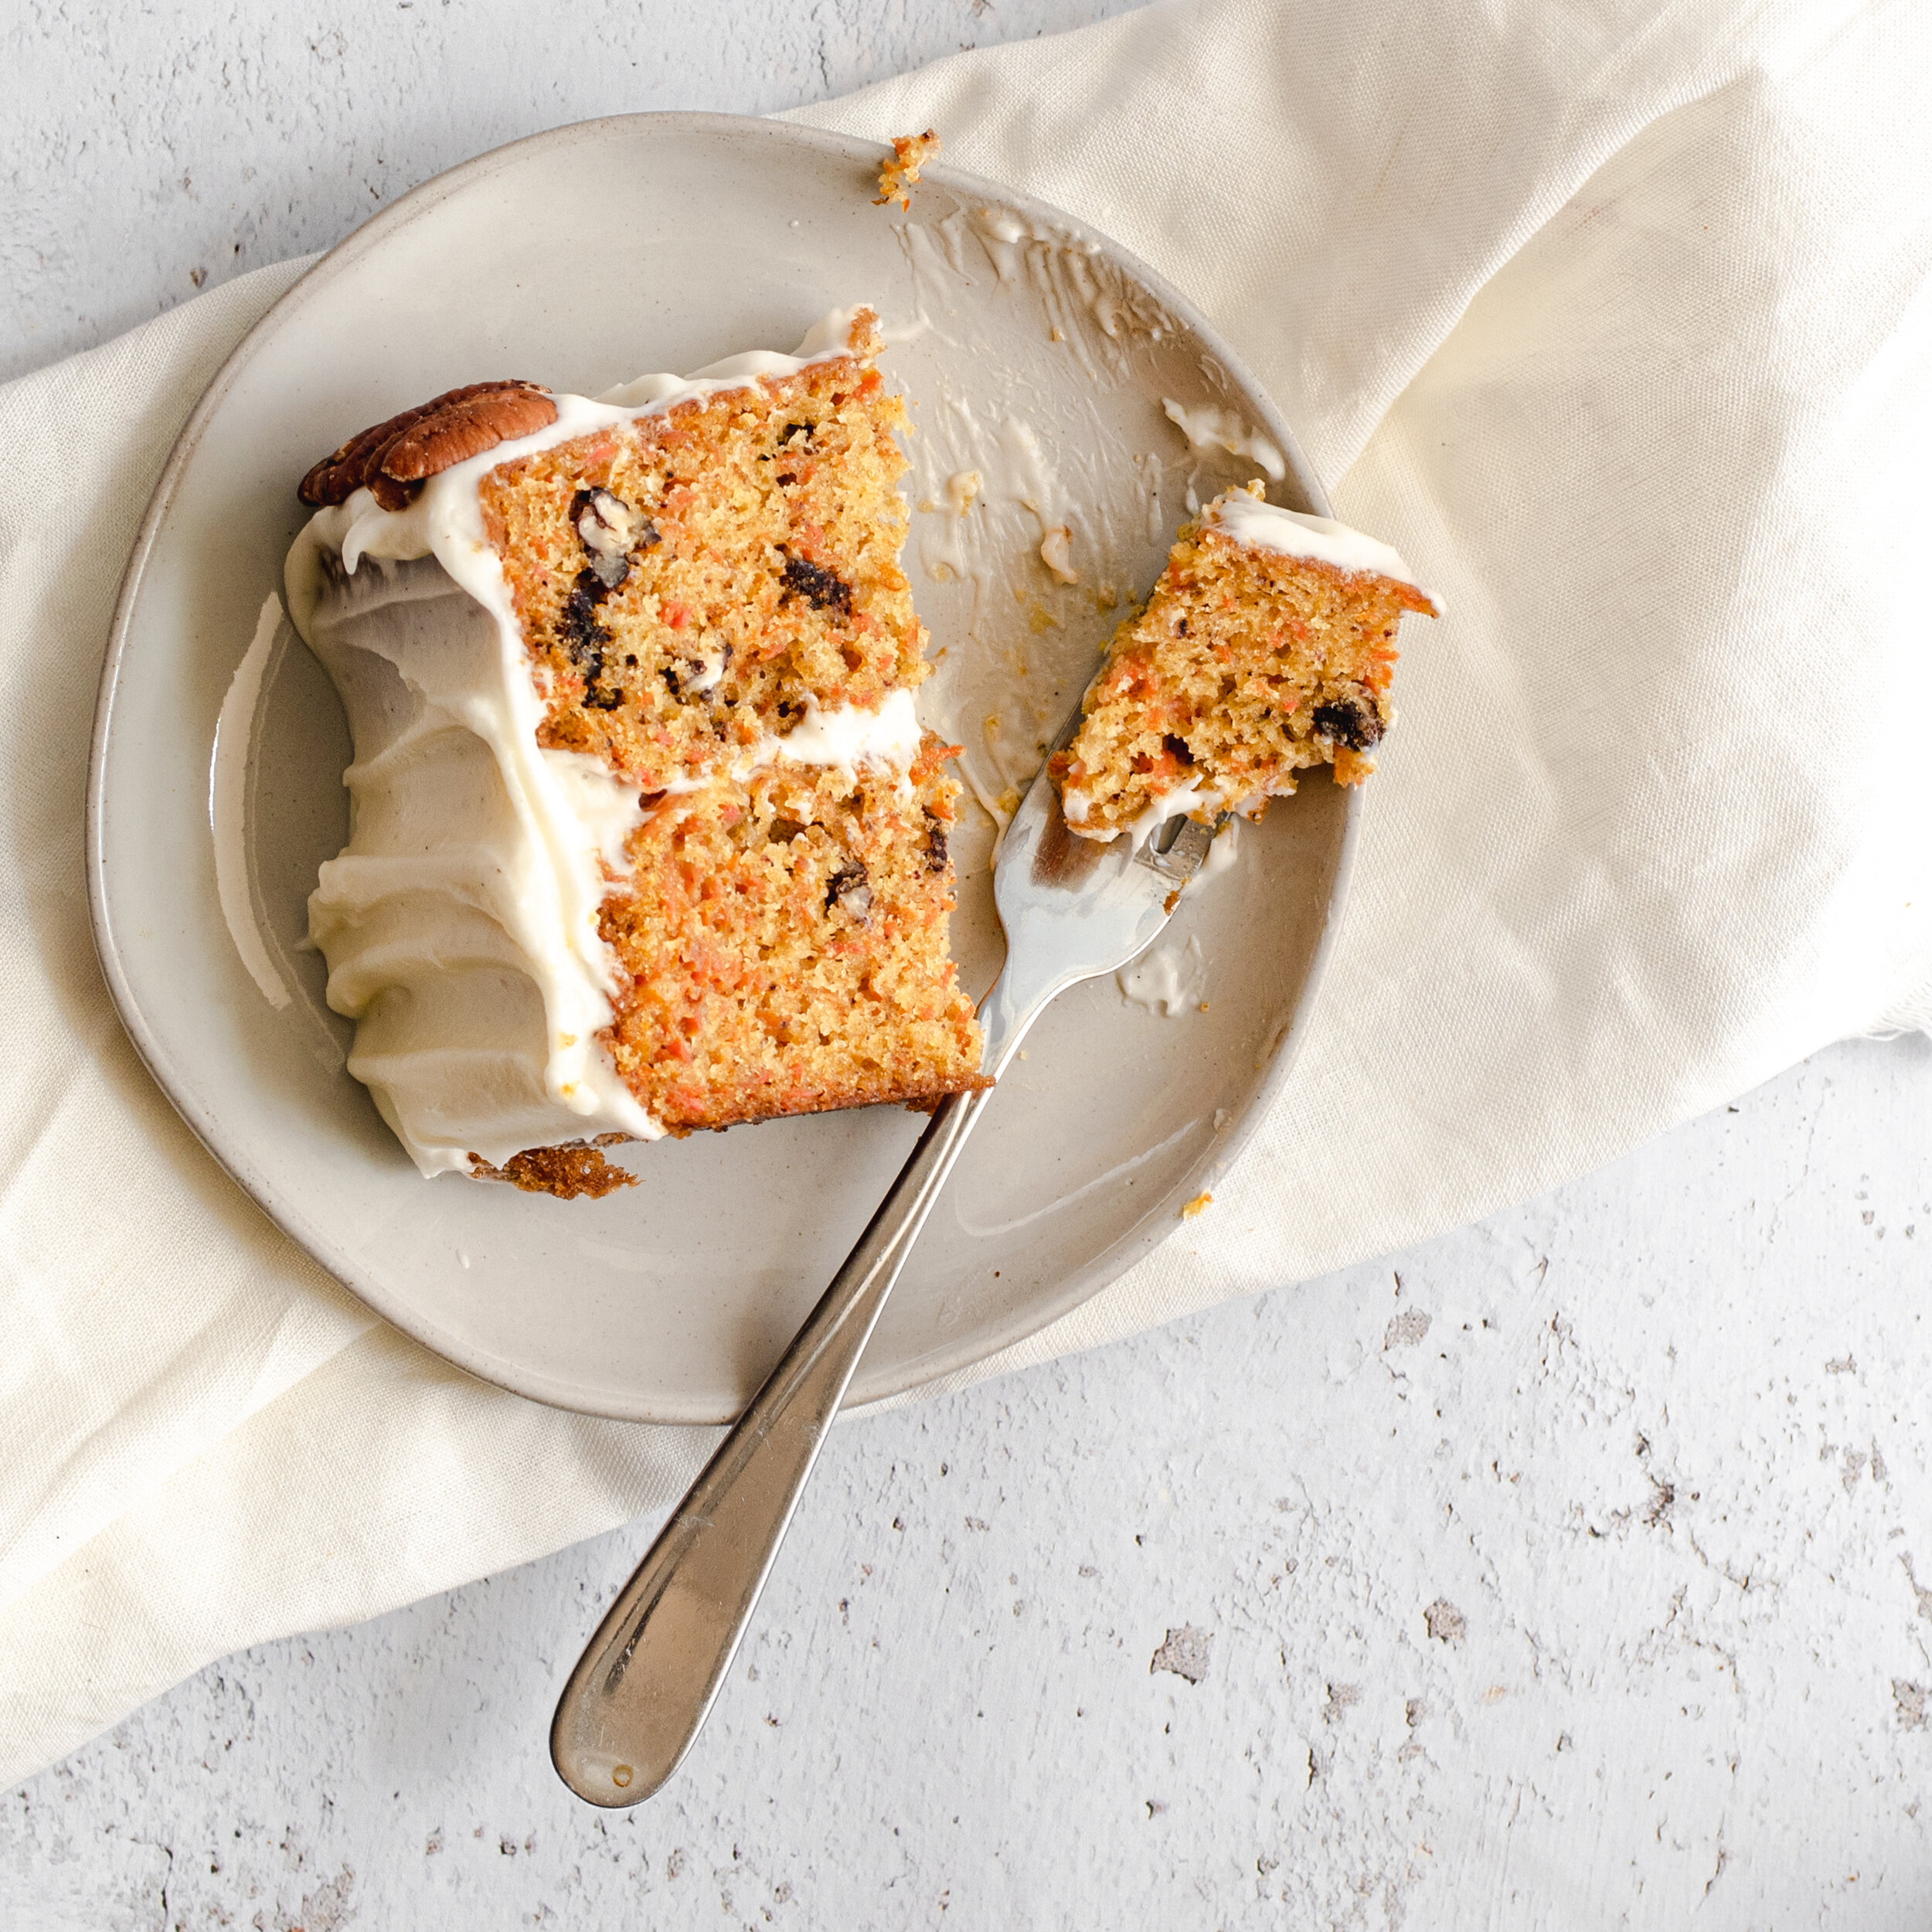 A slice of Southern mayonnaise carrot cake with a bite on a fork.